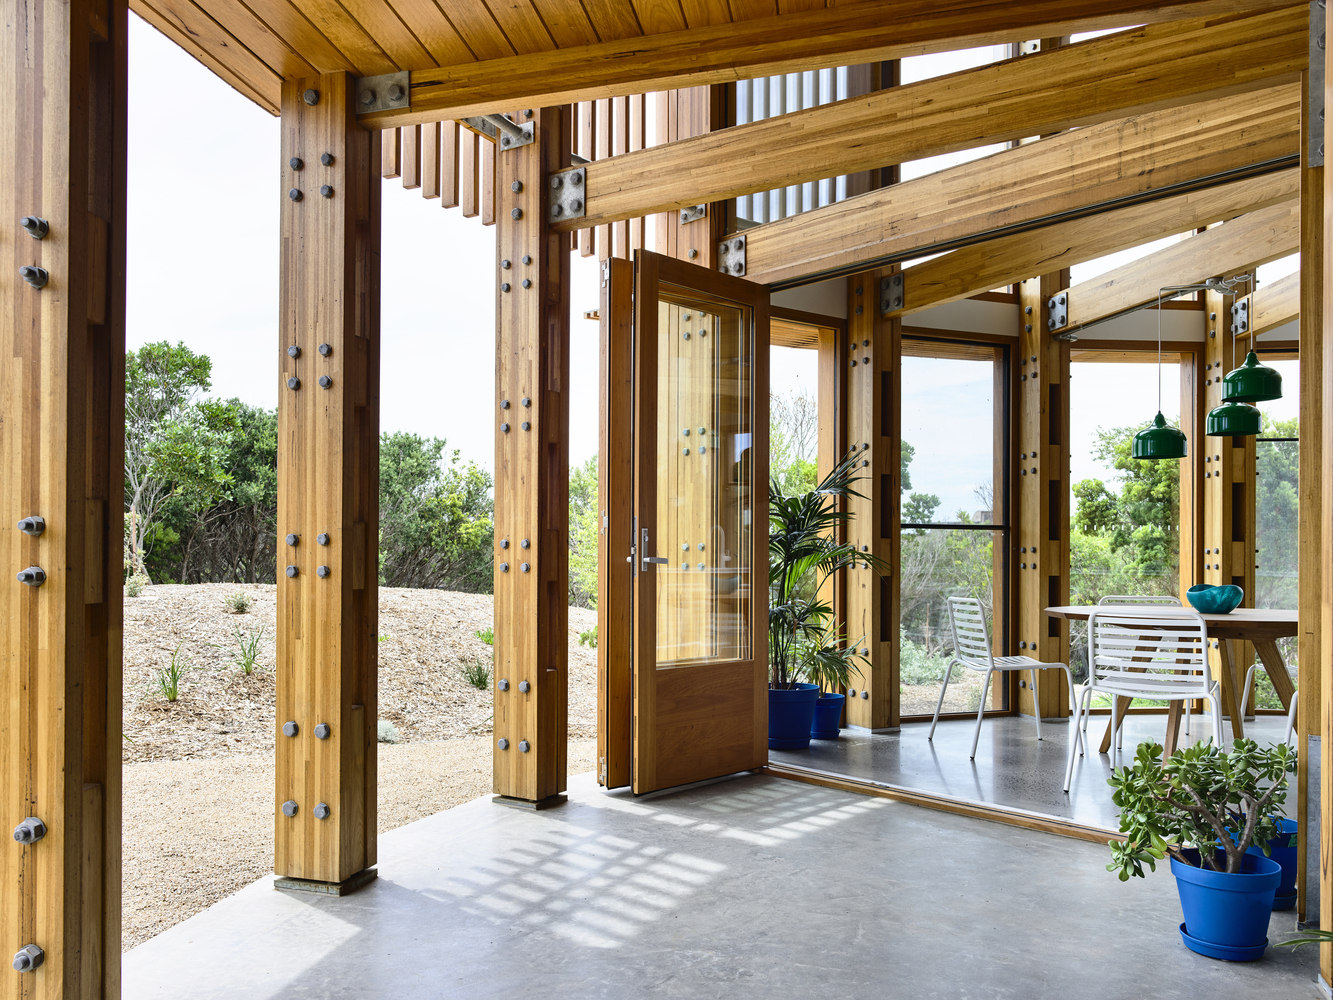 The ground floor has an open deck section with bu-fold doors and a seamless connection with the outdoors